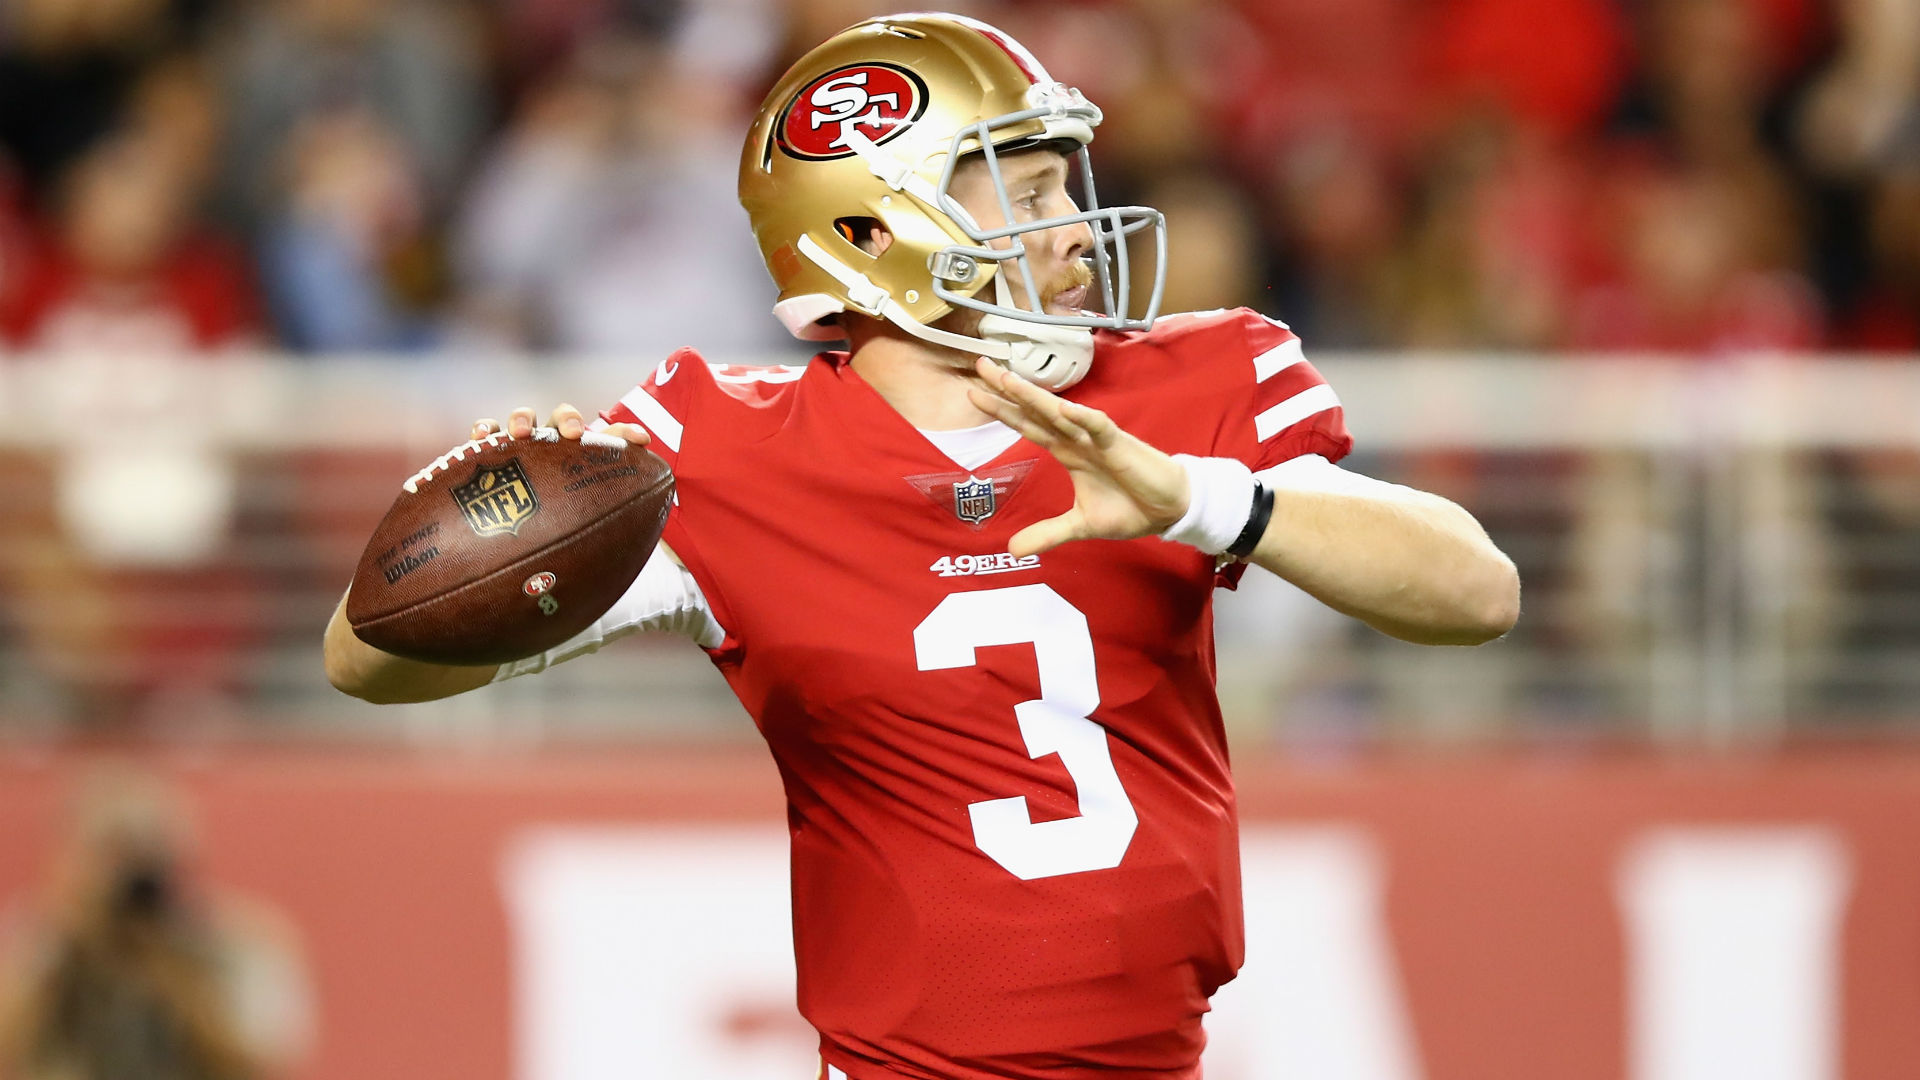 3rd-string QB Mullens helps 49ers destroy Raiders on TNF